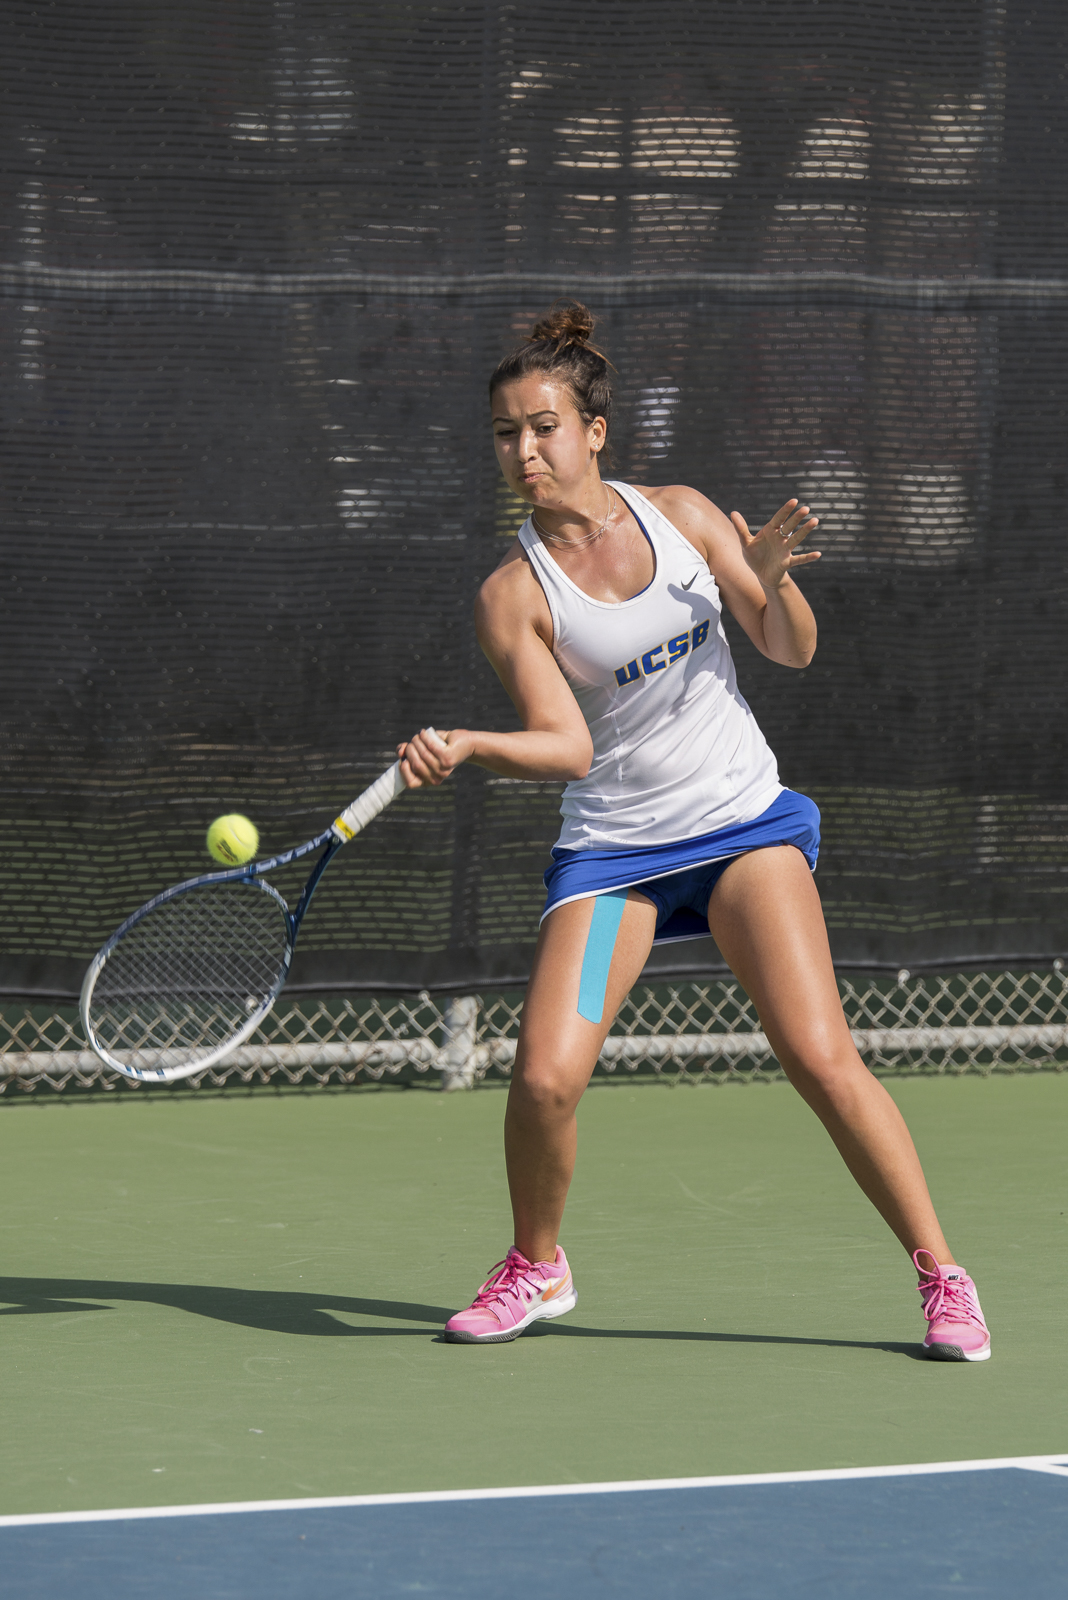 Stacy Yam returns a powerful forehand swing to the baseline. Eric Swenson/Daily Nexus